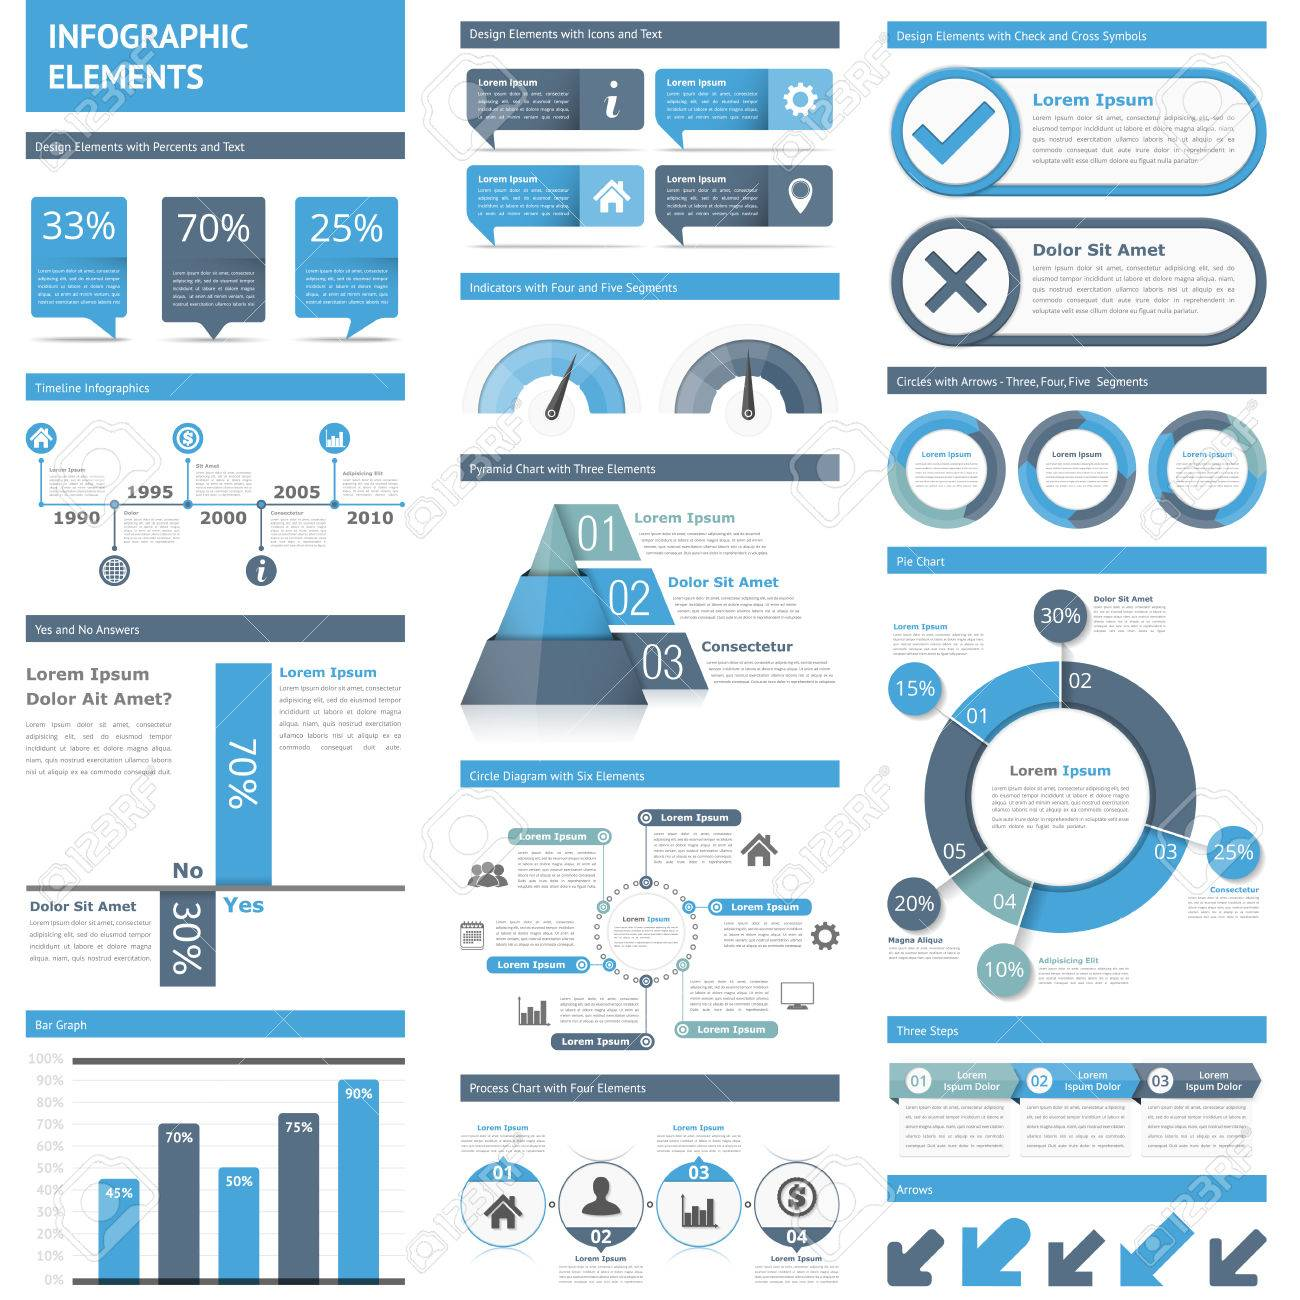 infographic elements timeline bar graphs pyramid chart process